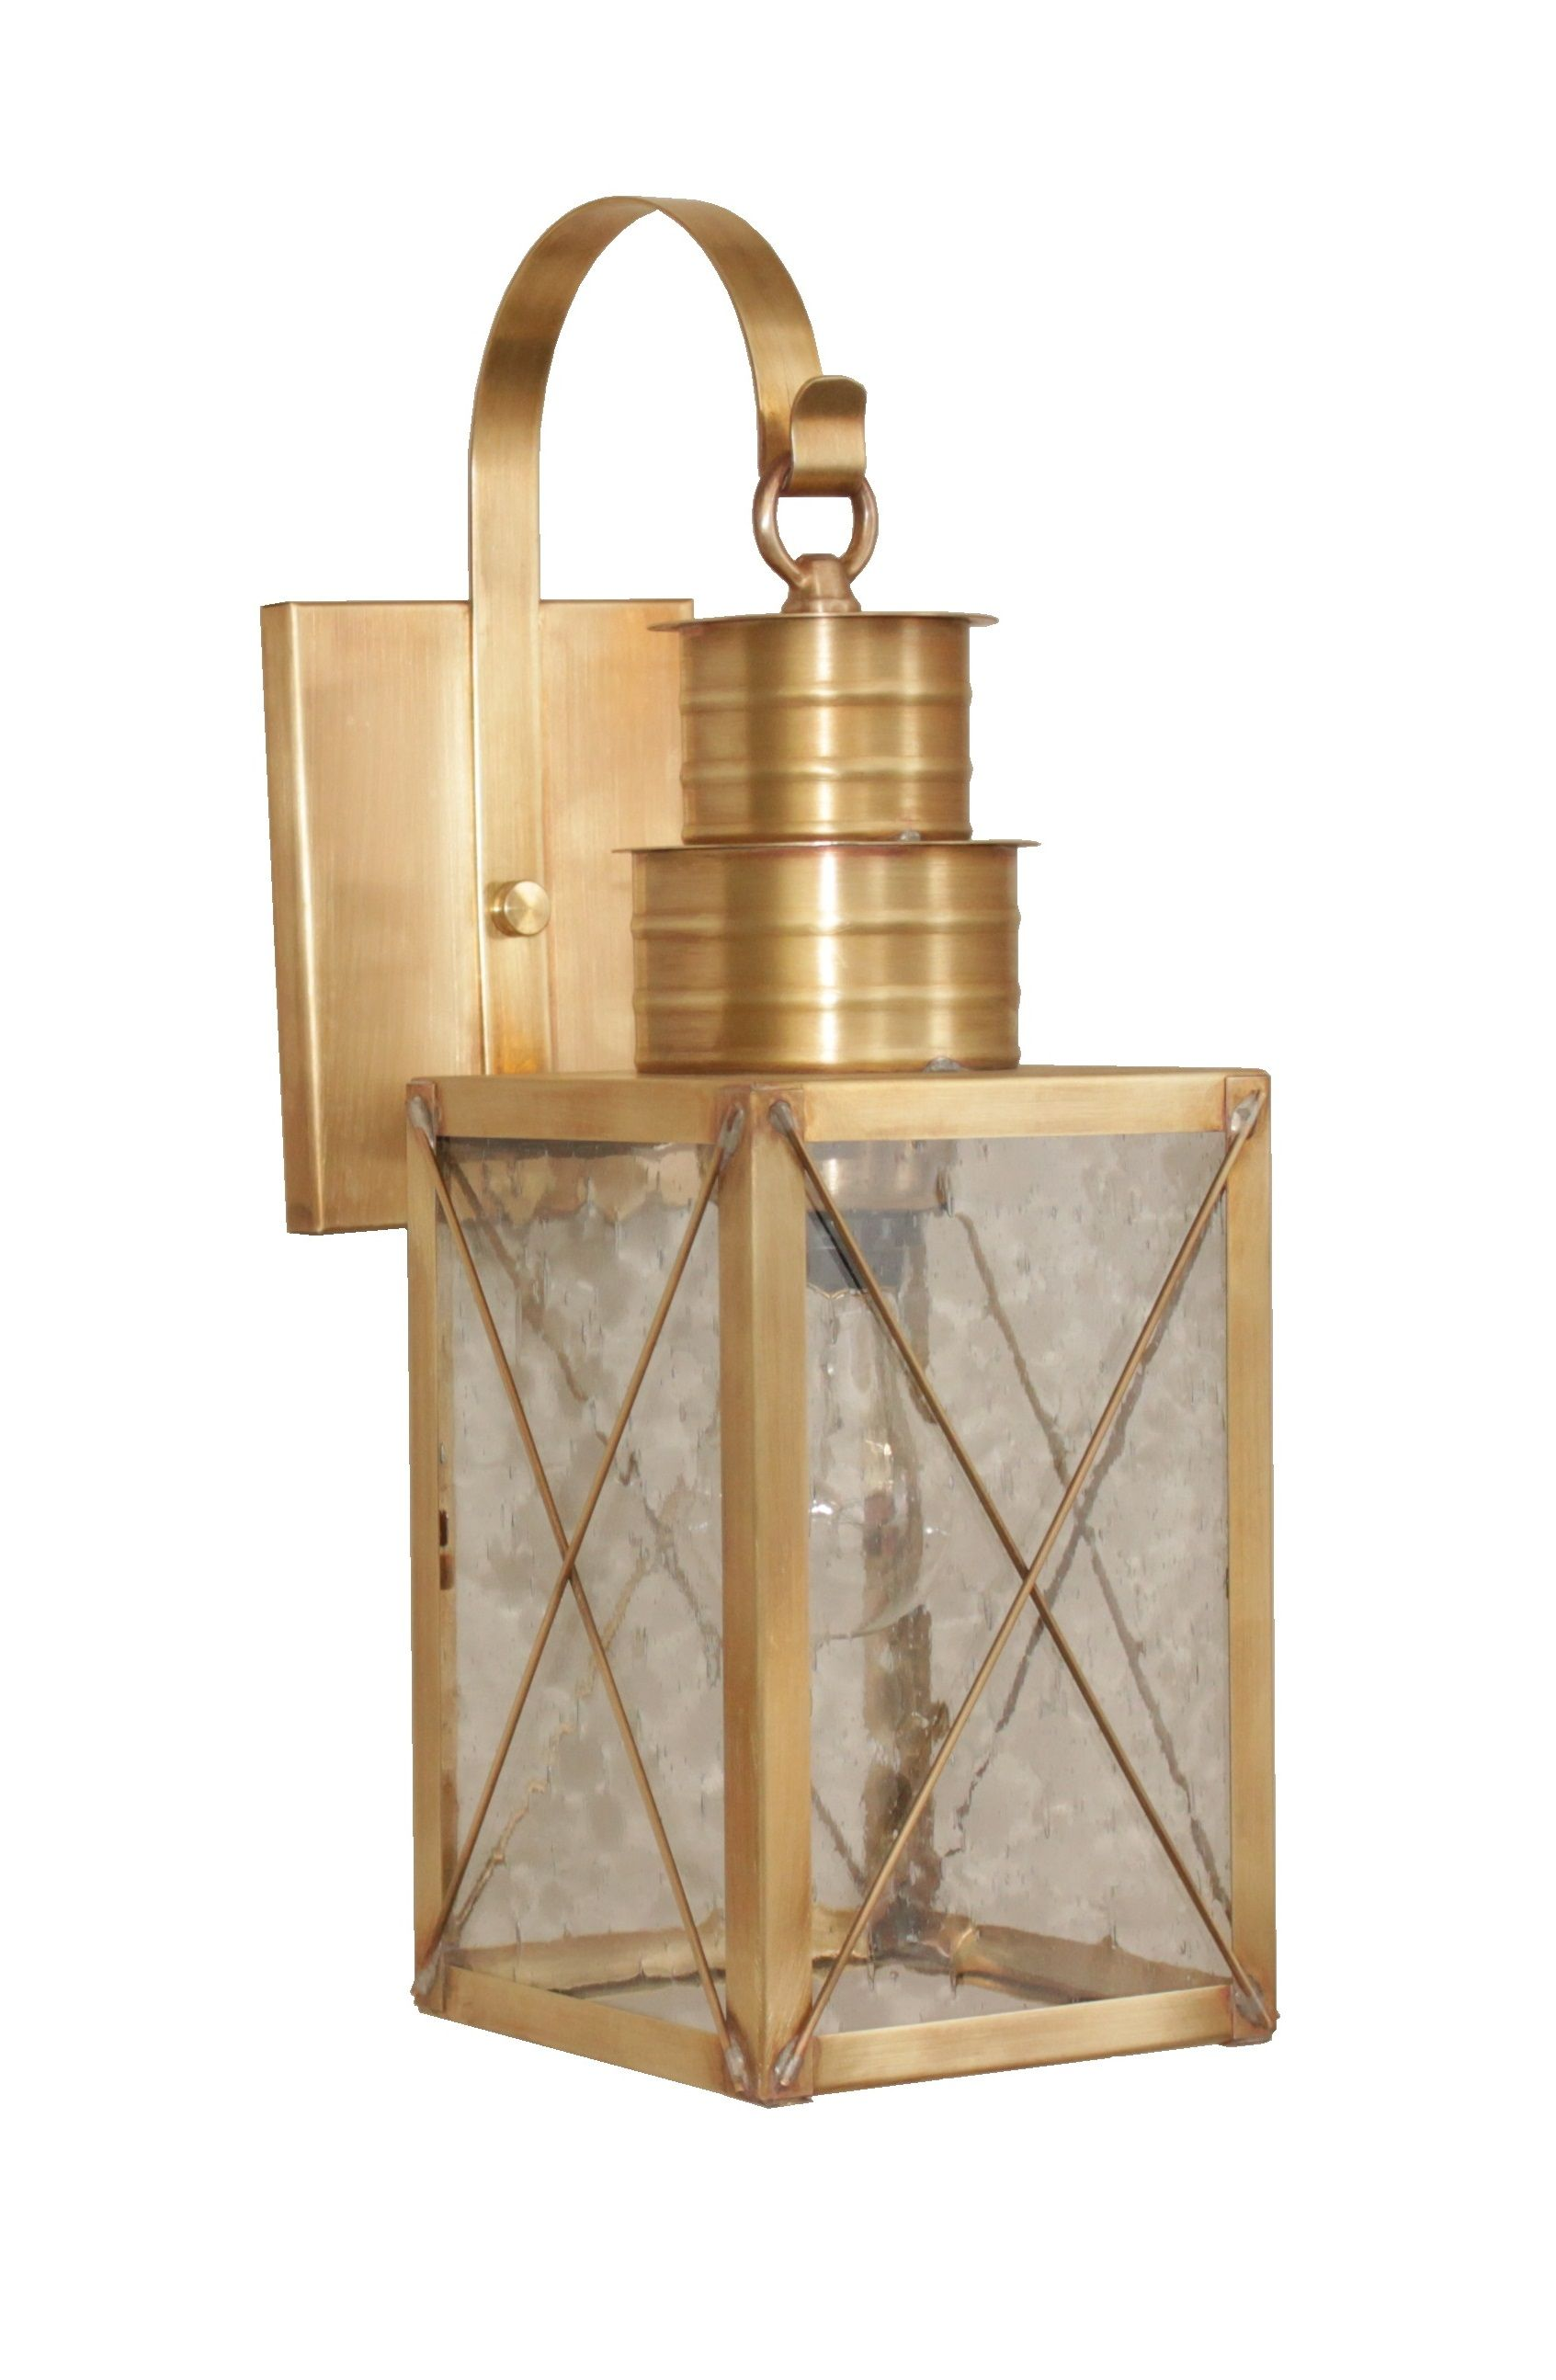 Brass Traditions 221 P Wall Lantern In Antique Brass Brasstraditions Ctmade Quality Handcraft Outdoor Hanging Lanterns Outdoor Walls Outdoor Wall Lighting